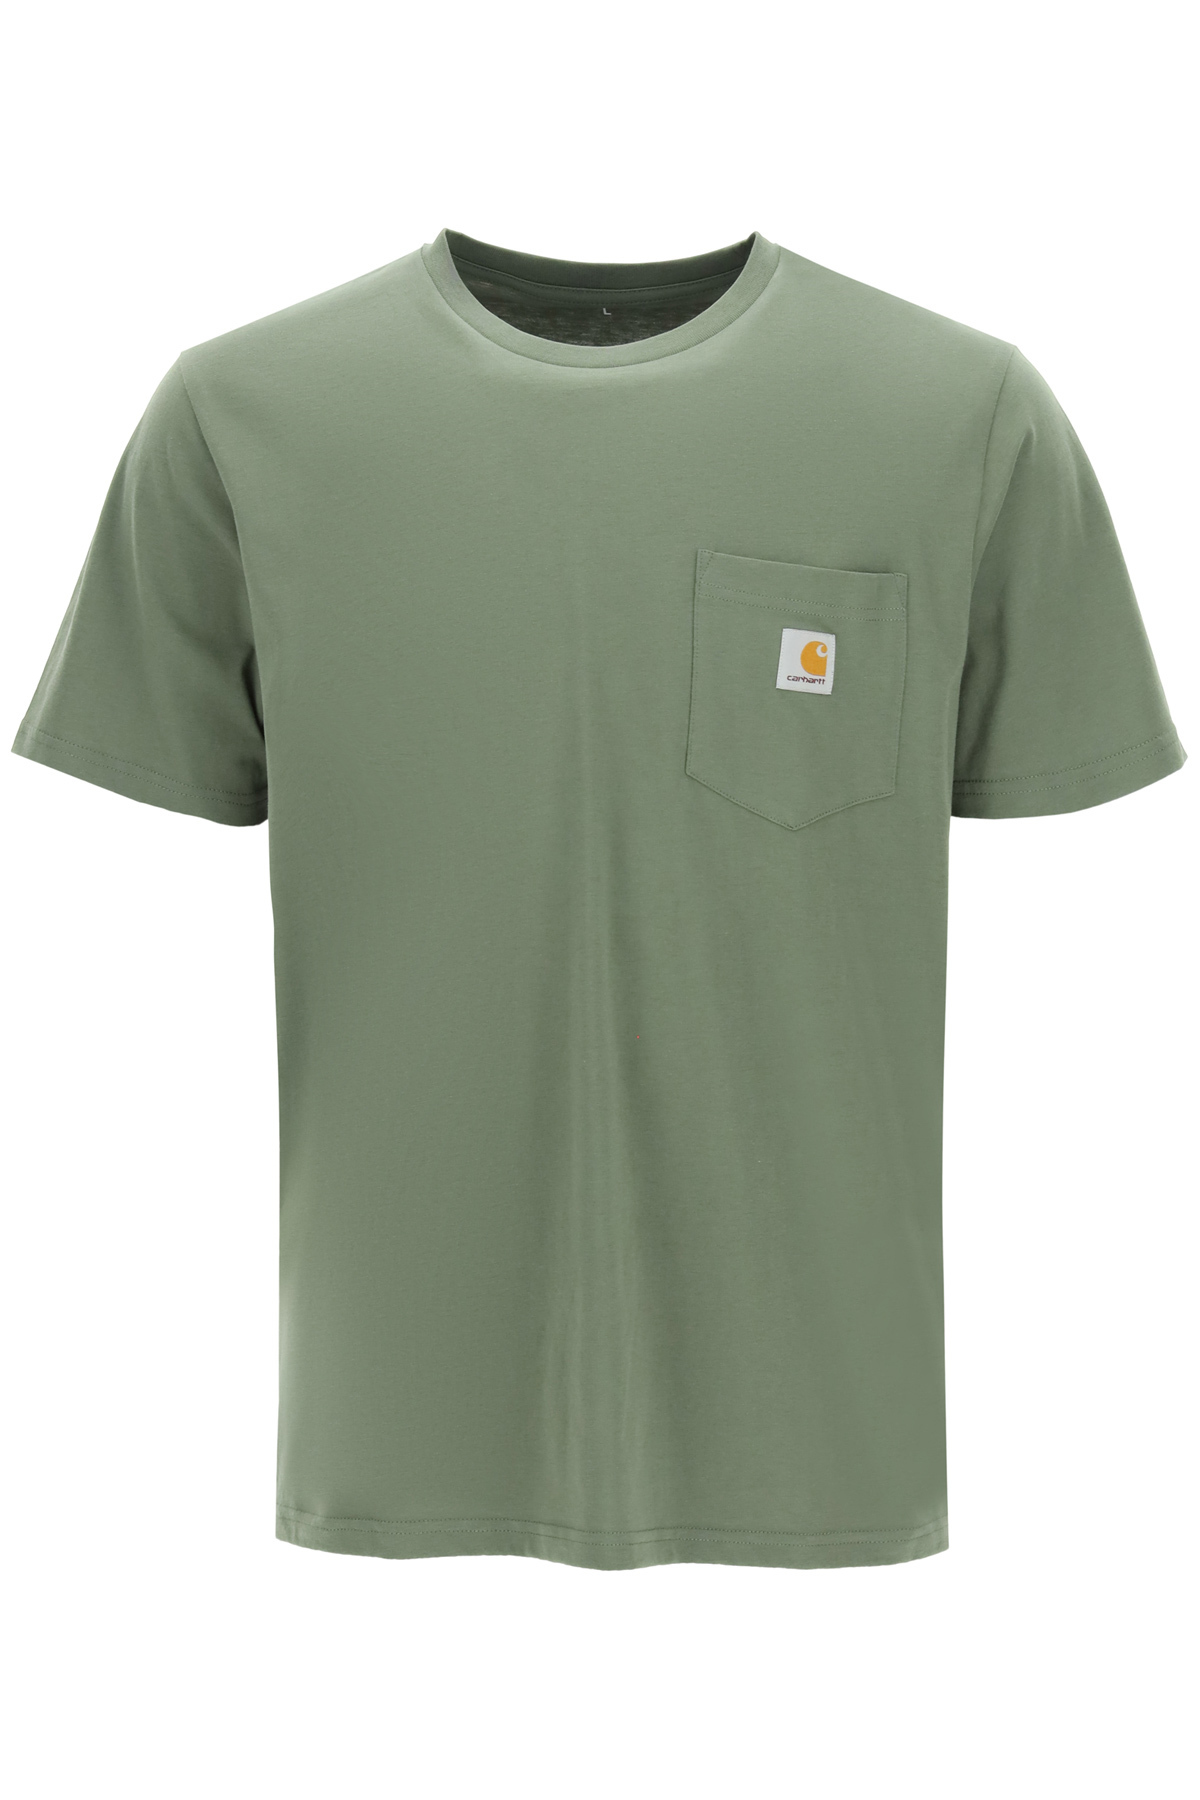 S/S T-SHIRT POCKET WITH LOGO PATCH